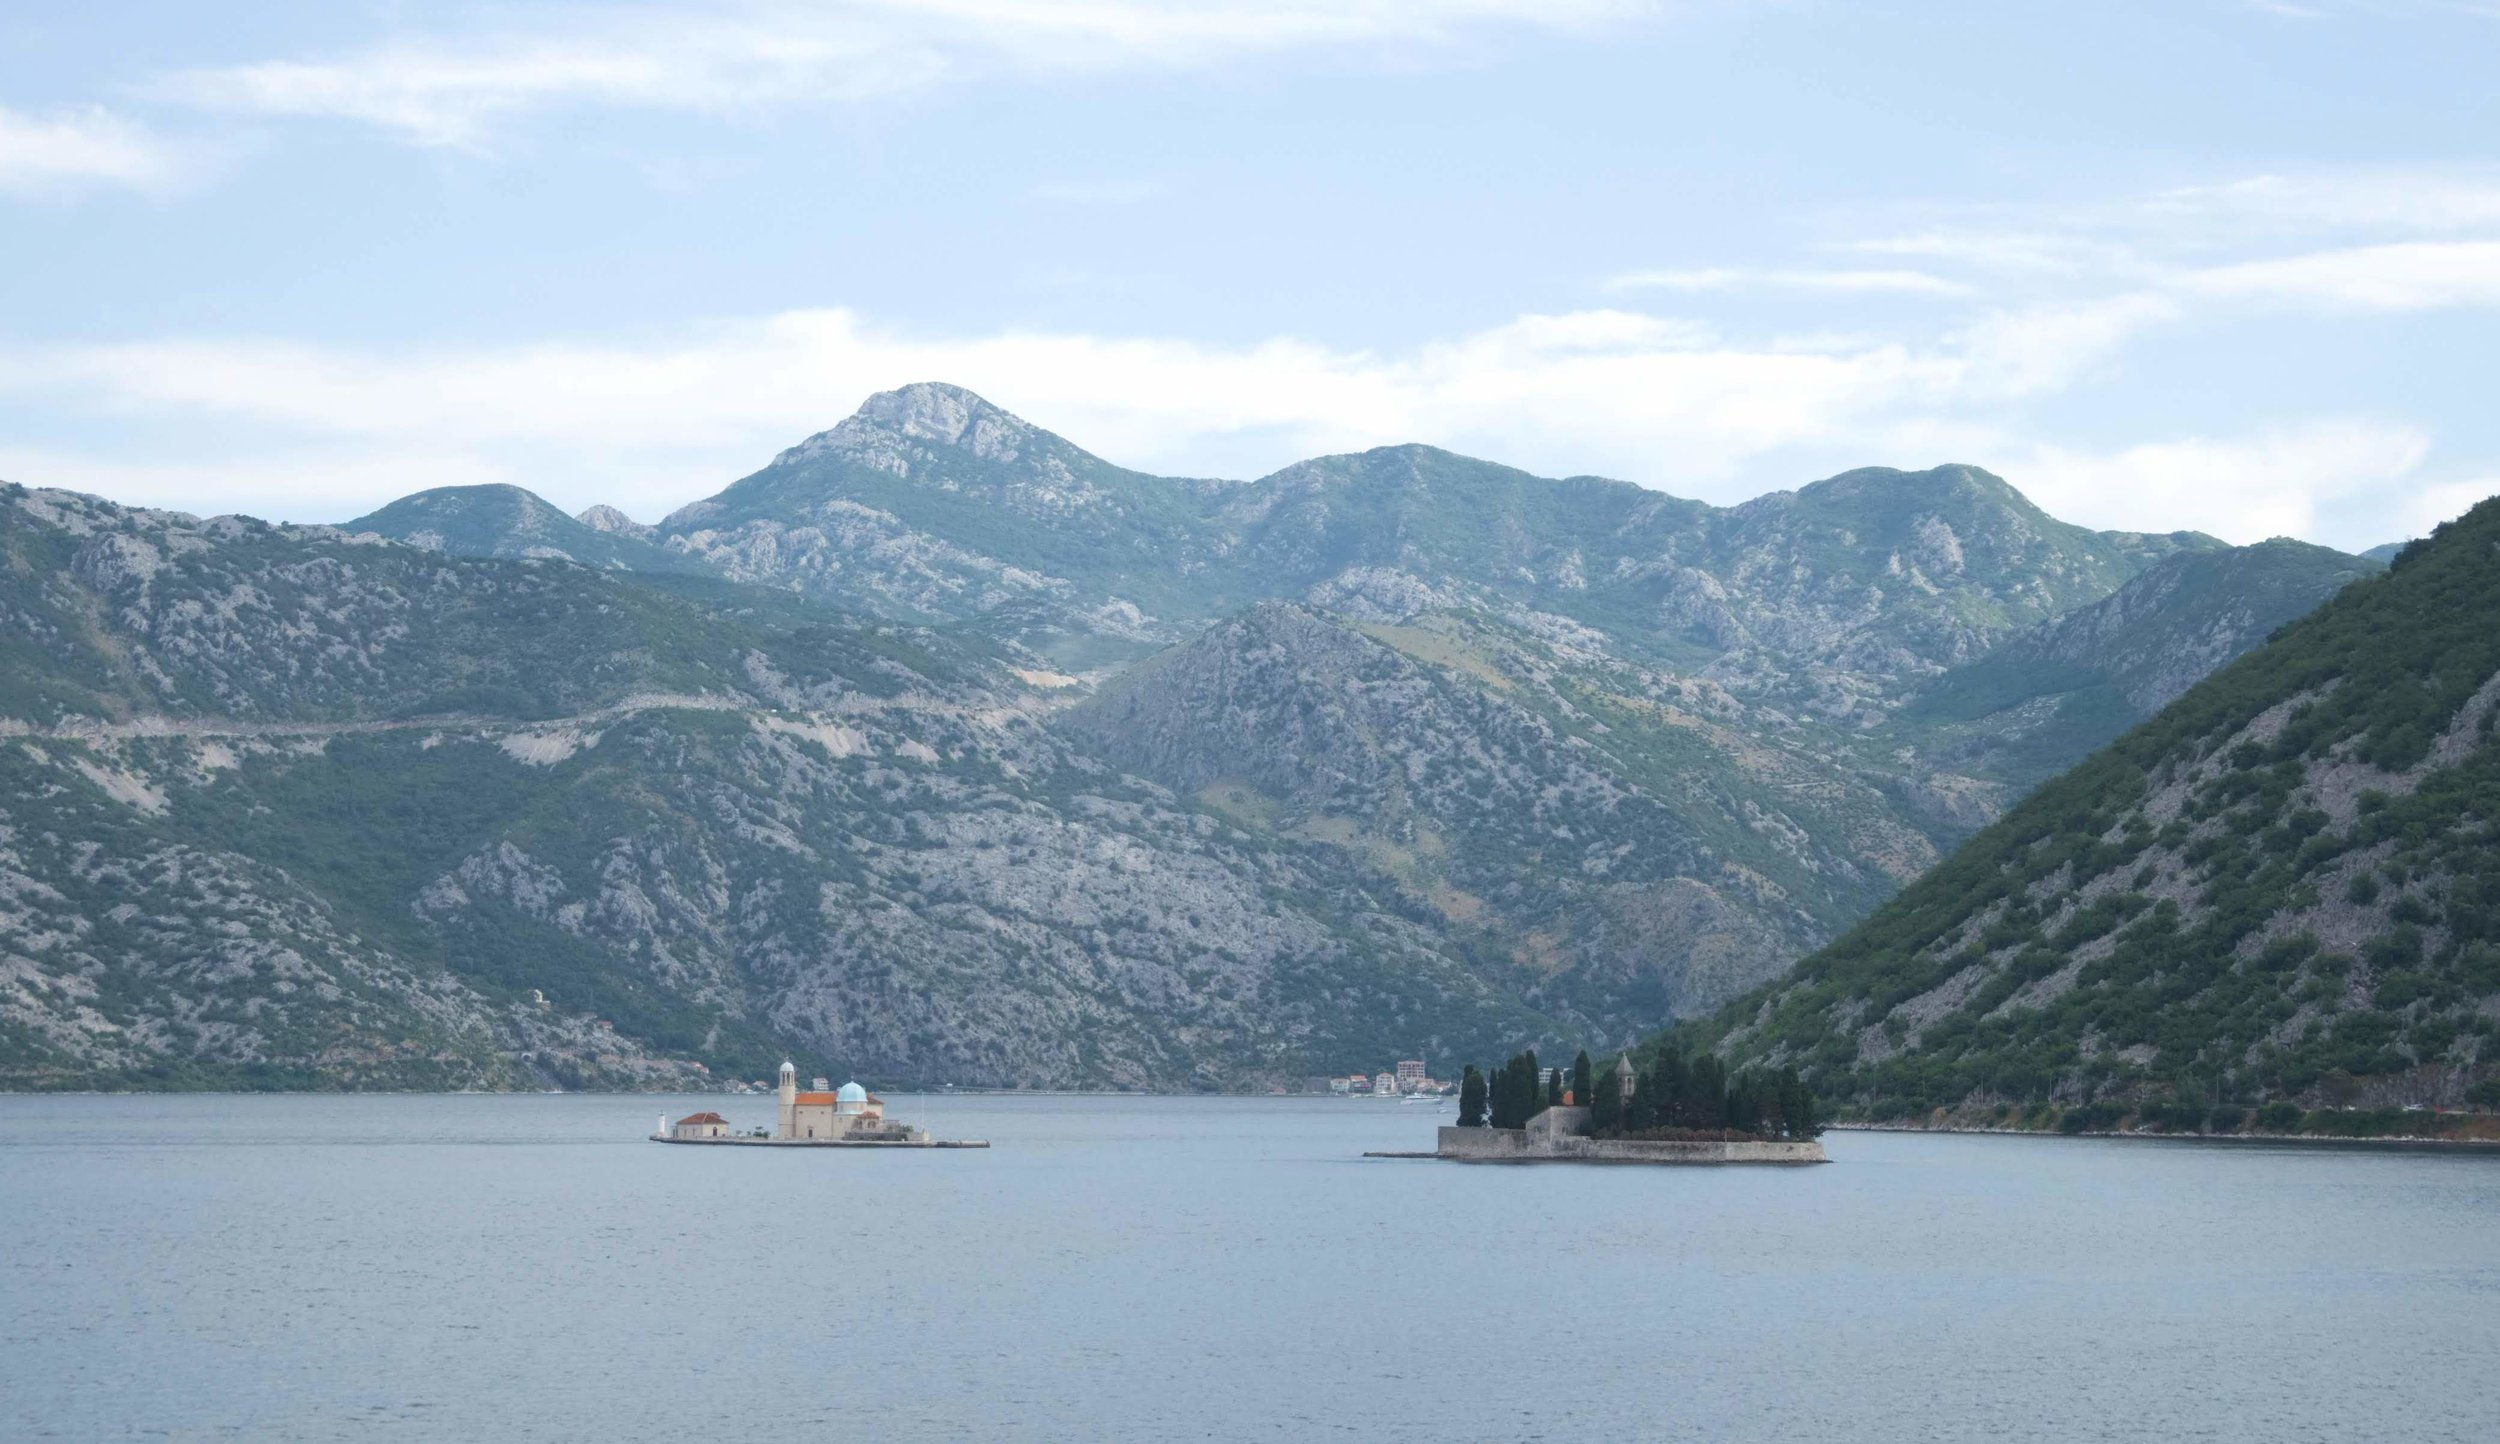 The islands of Perast: Our Lady of the Rocks and the Island of St. George, respectively. (Photo: tPac)